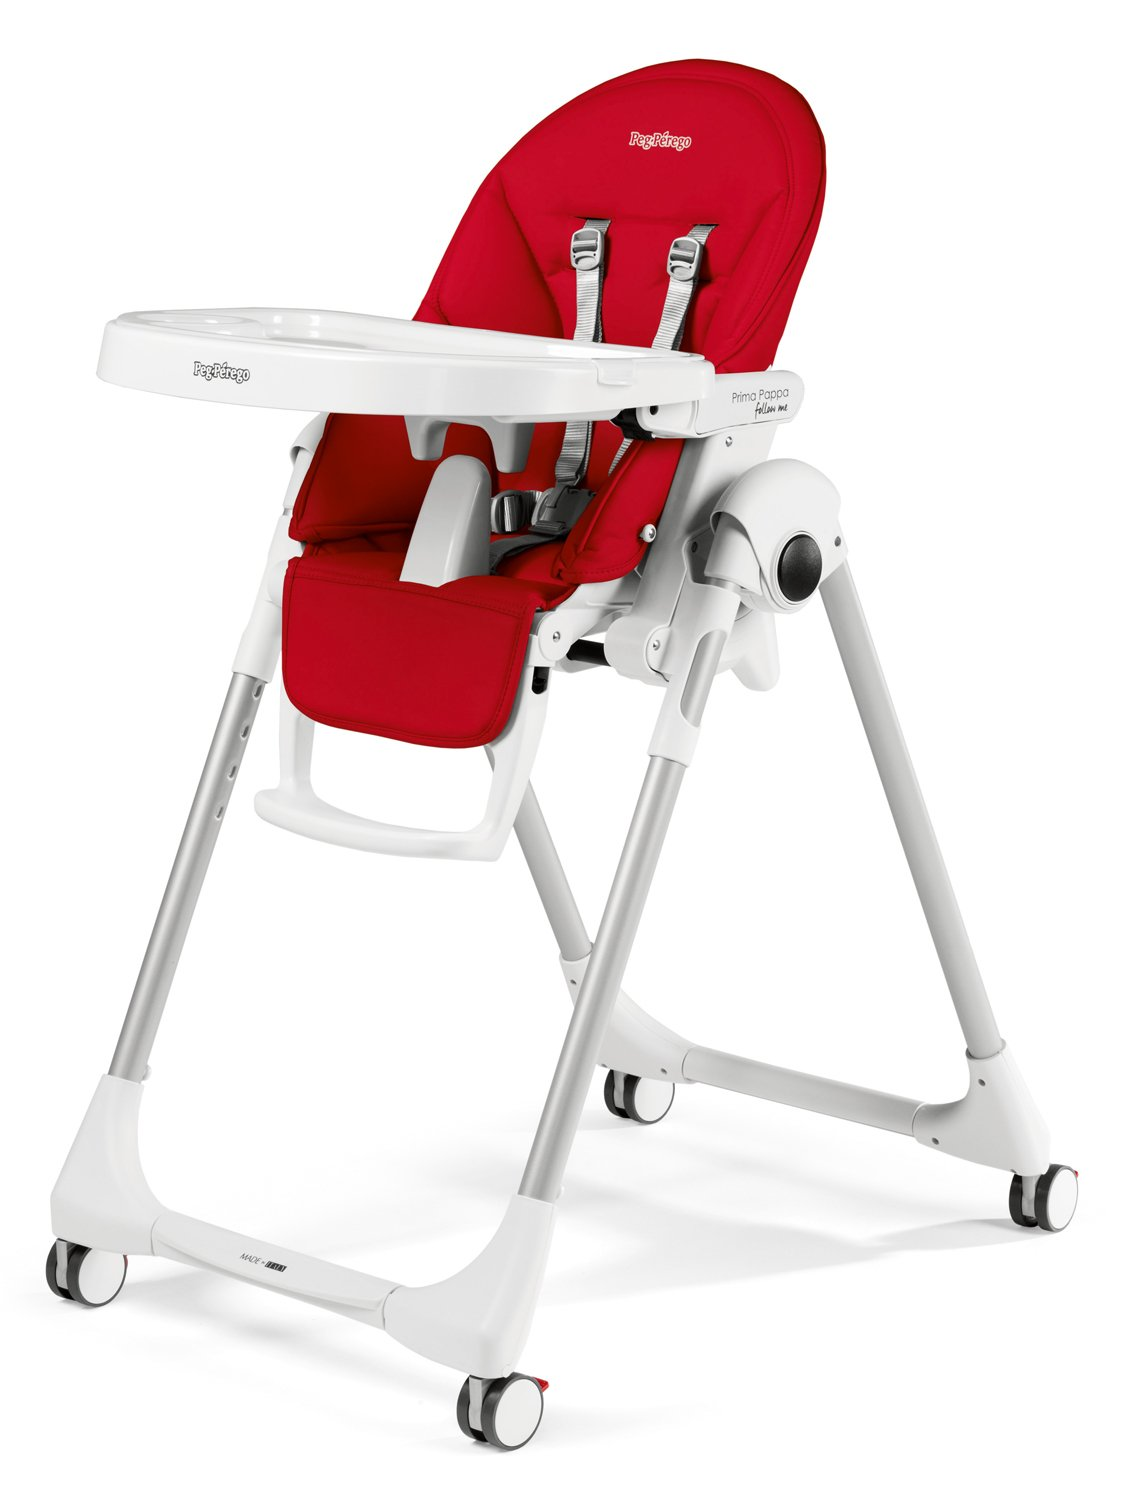 Peg perego high chair prima pappa zero3 buy at kidsroom - Coussin pour chaise haute prima pappa ...